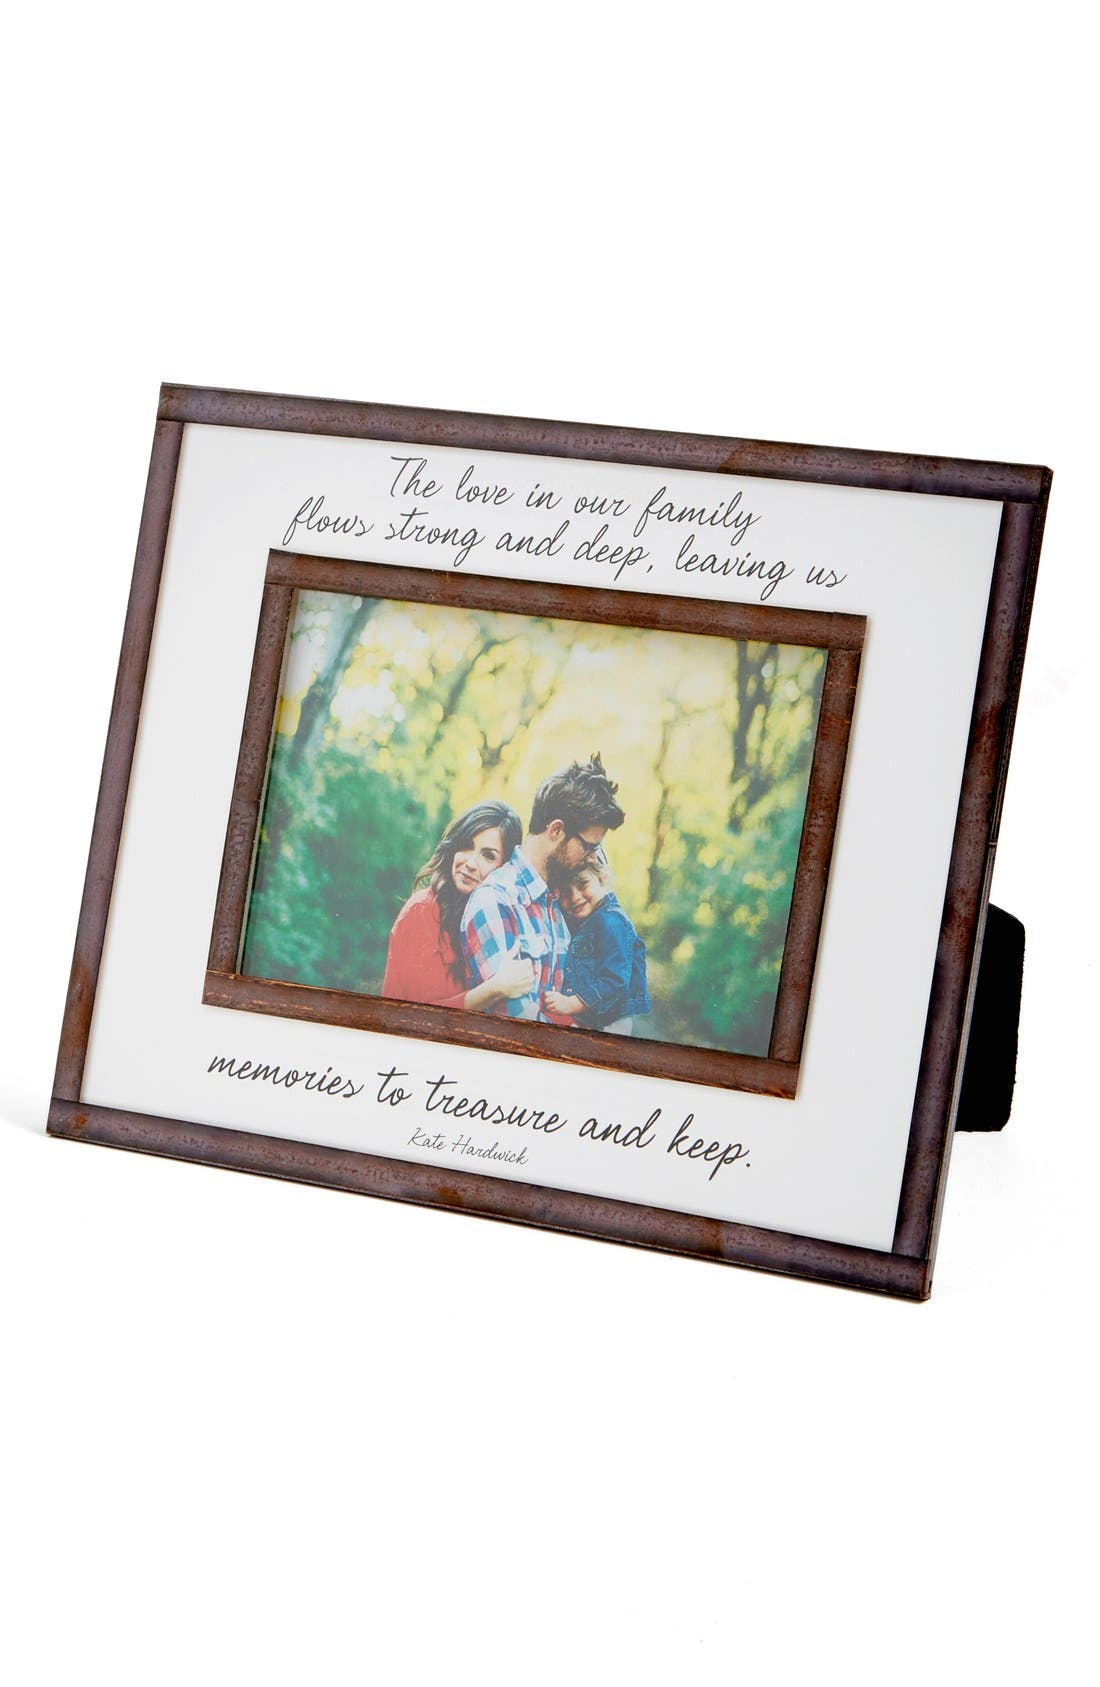 Love in Our Family Picture Frame,                             Main thumbnail 1, color,                             200